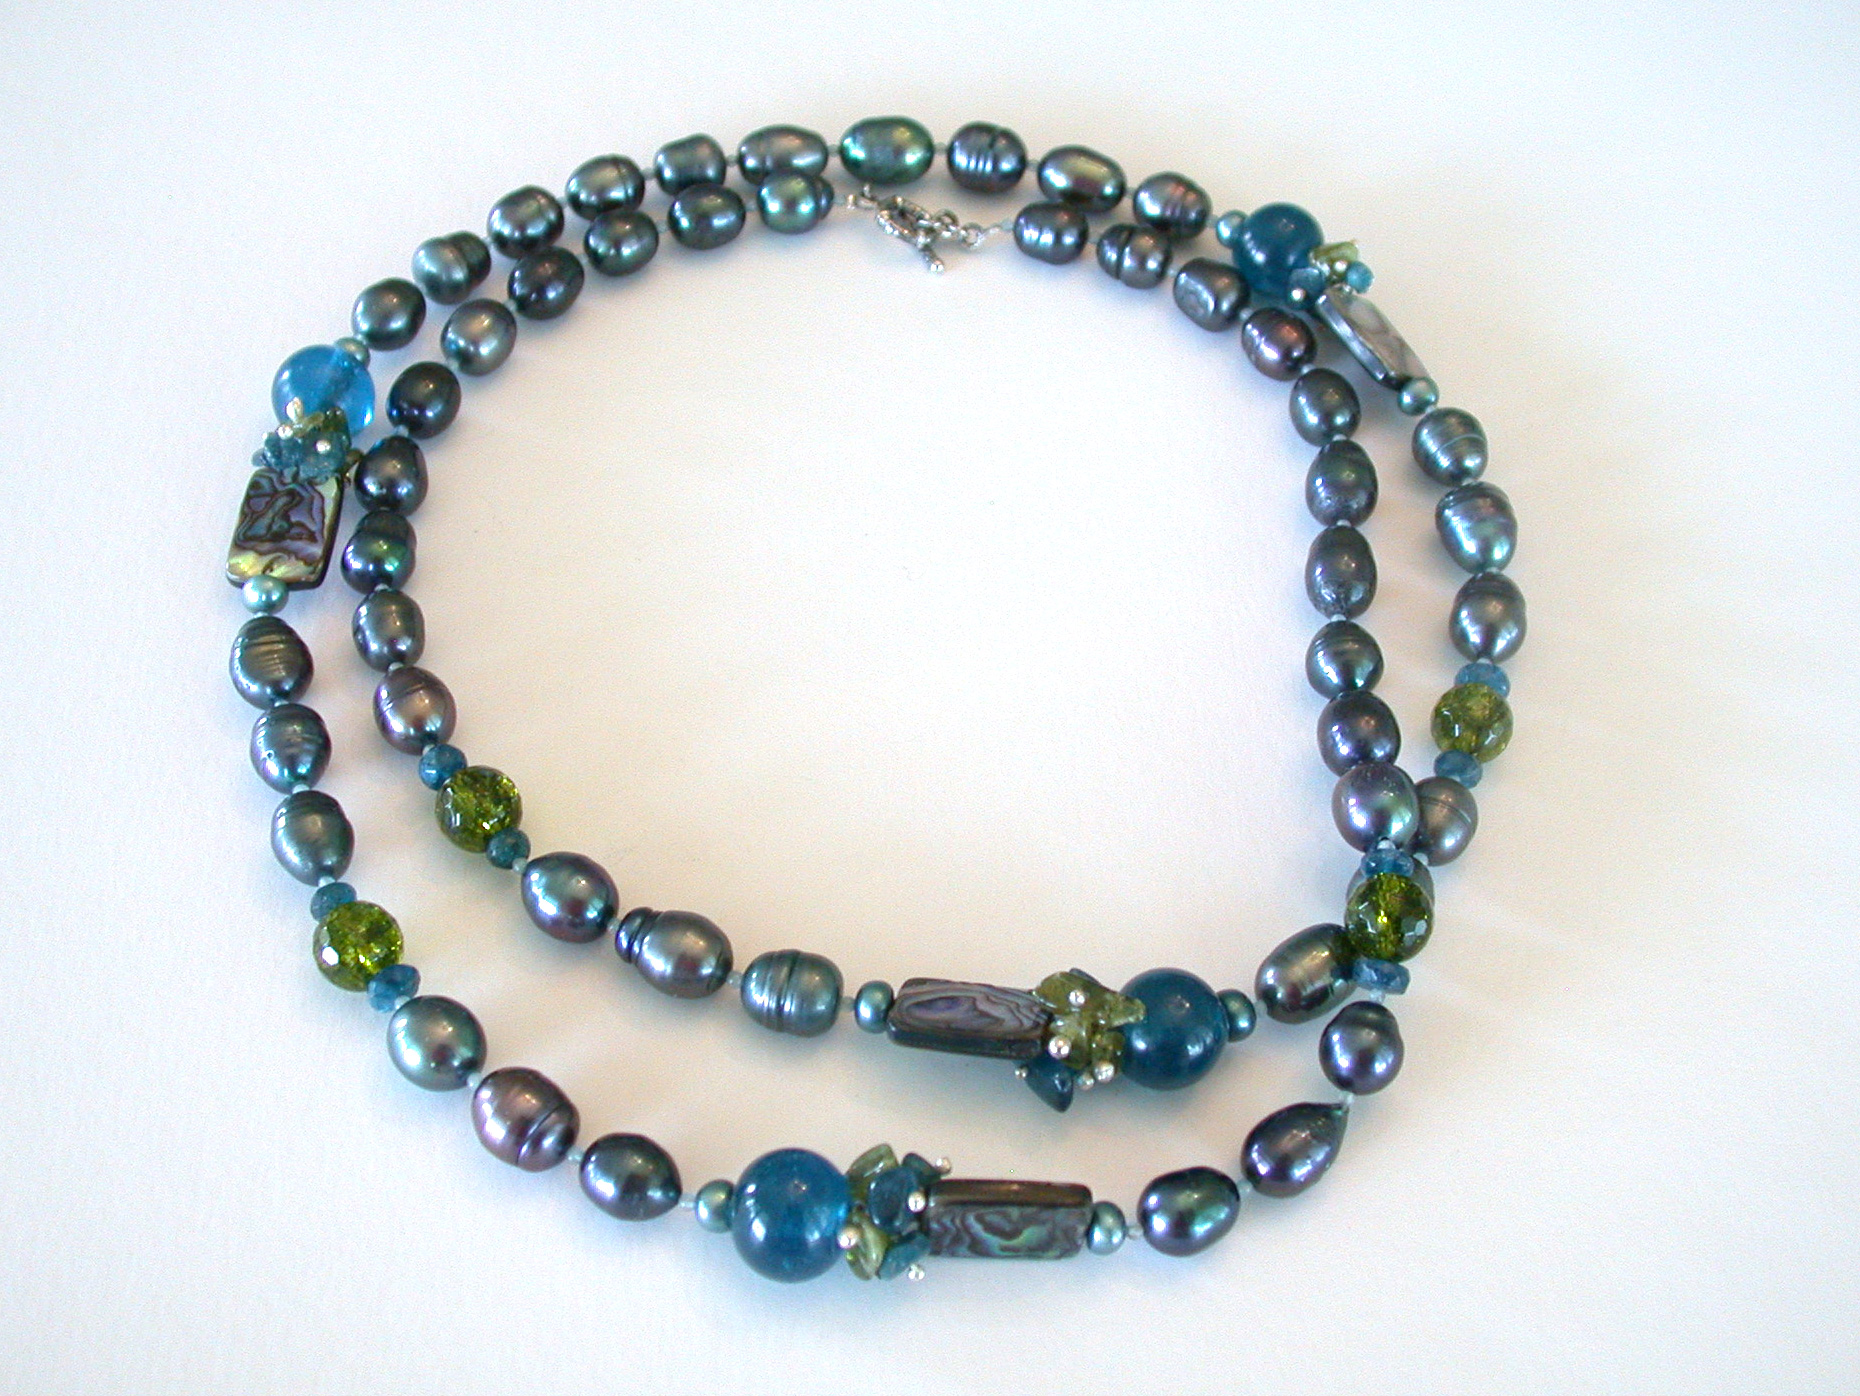 Amy Kahn Russell Online Trunk Show: Freshwater Pearl, Abalone, Apatite & Peridot Necklace | Rendezvous Gallery